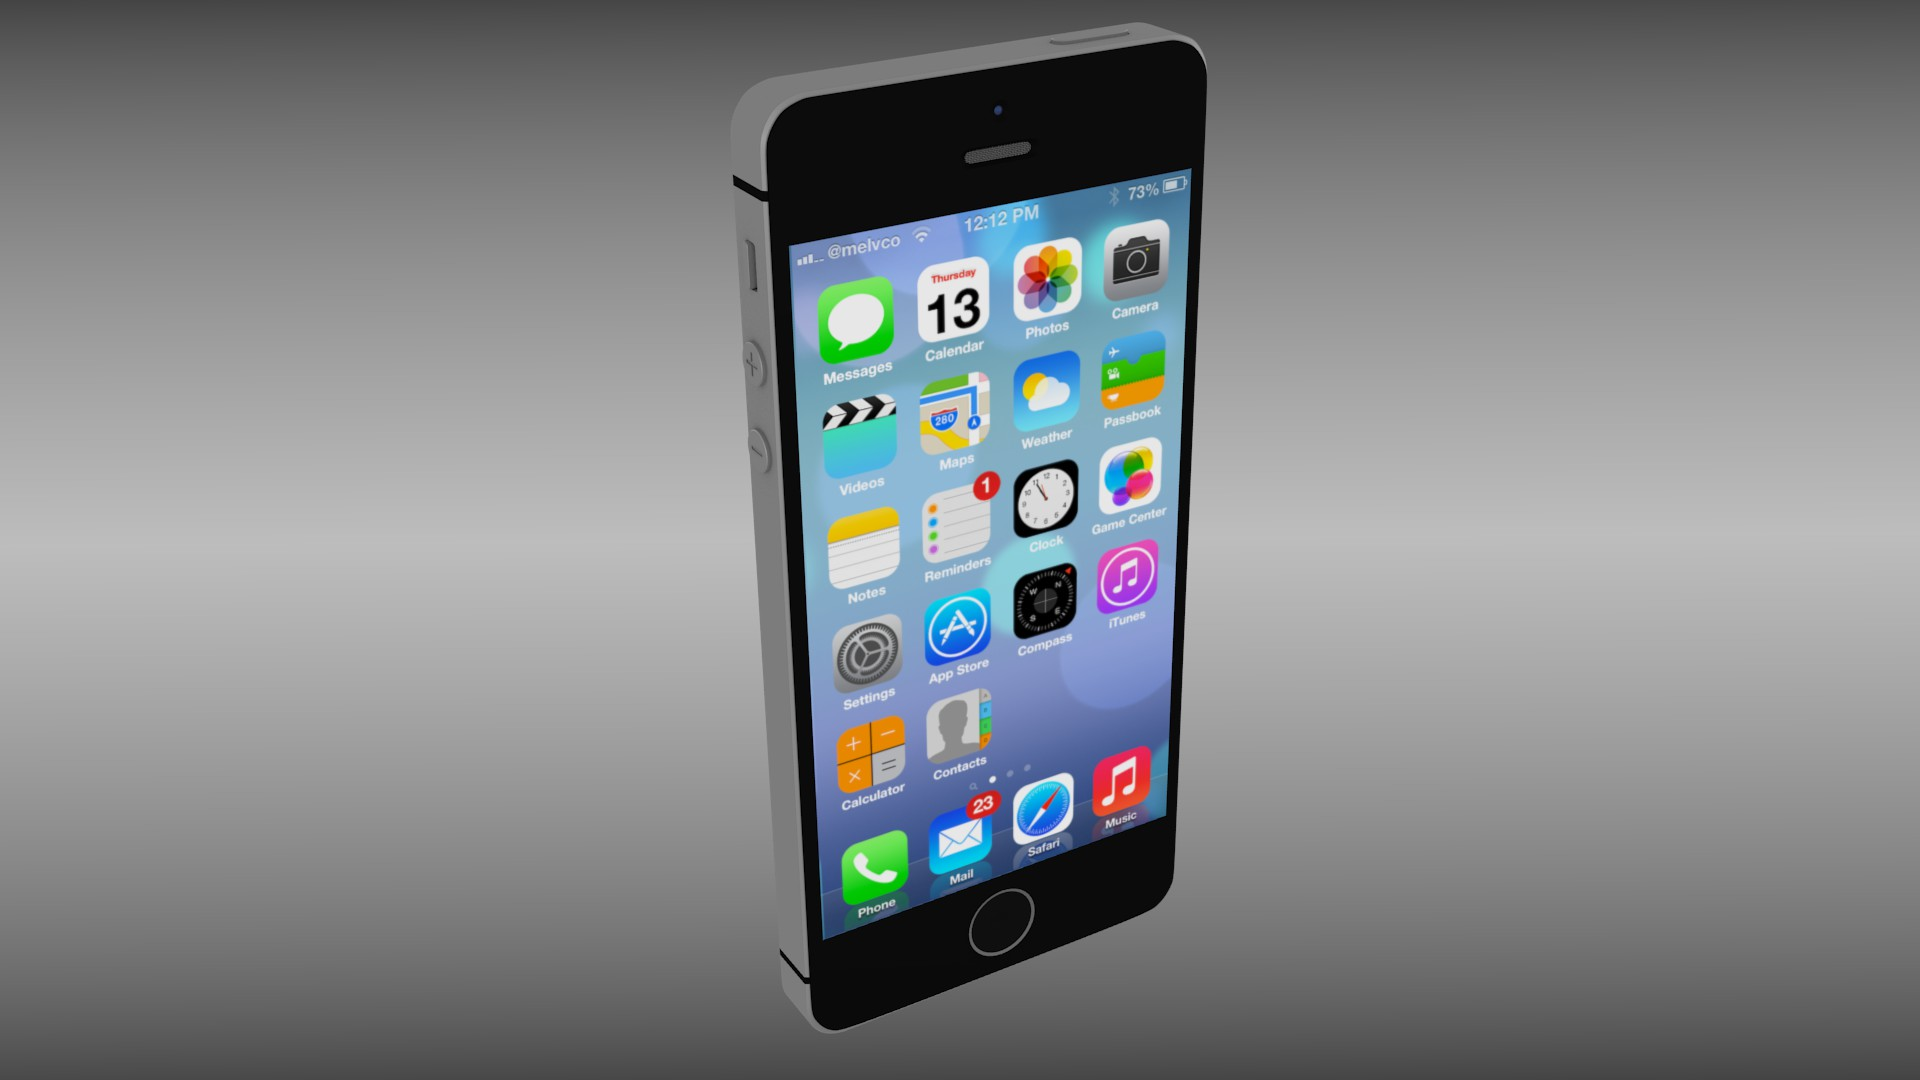 iphone 5s black images